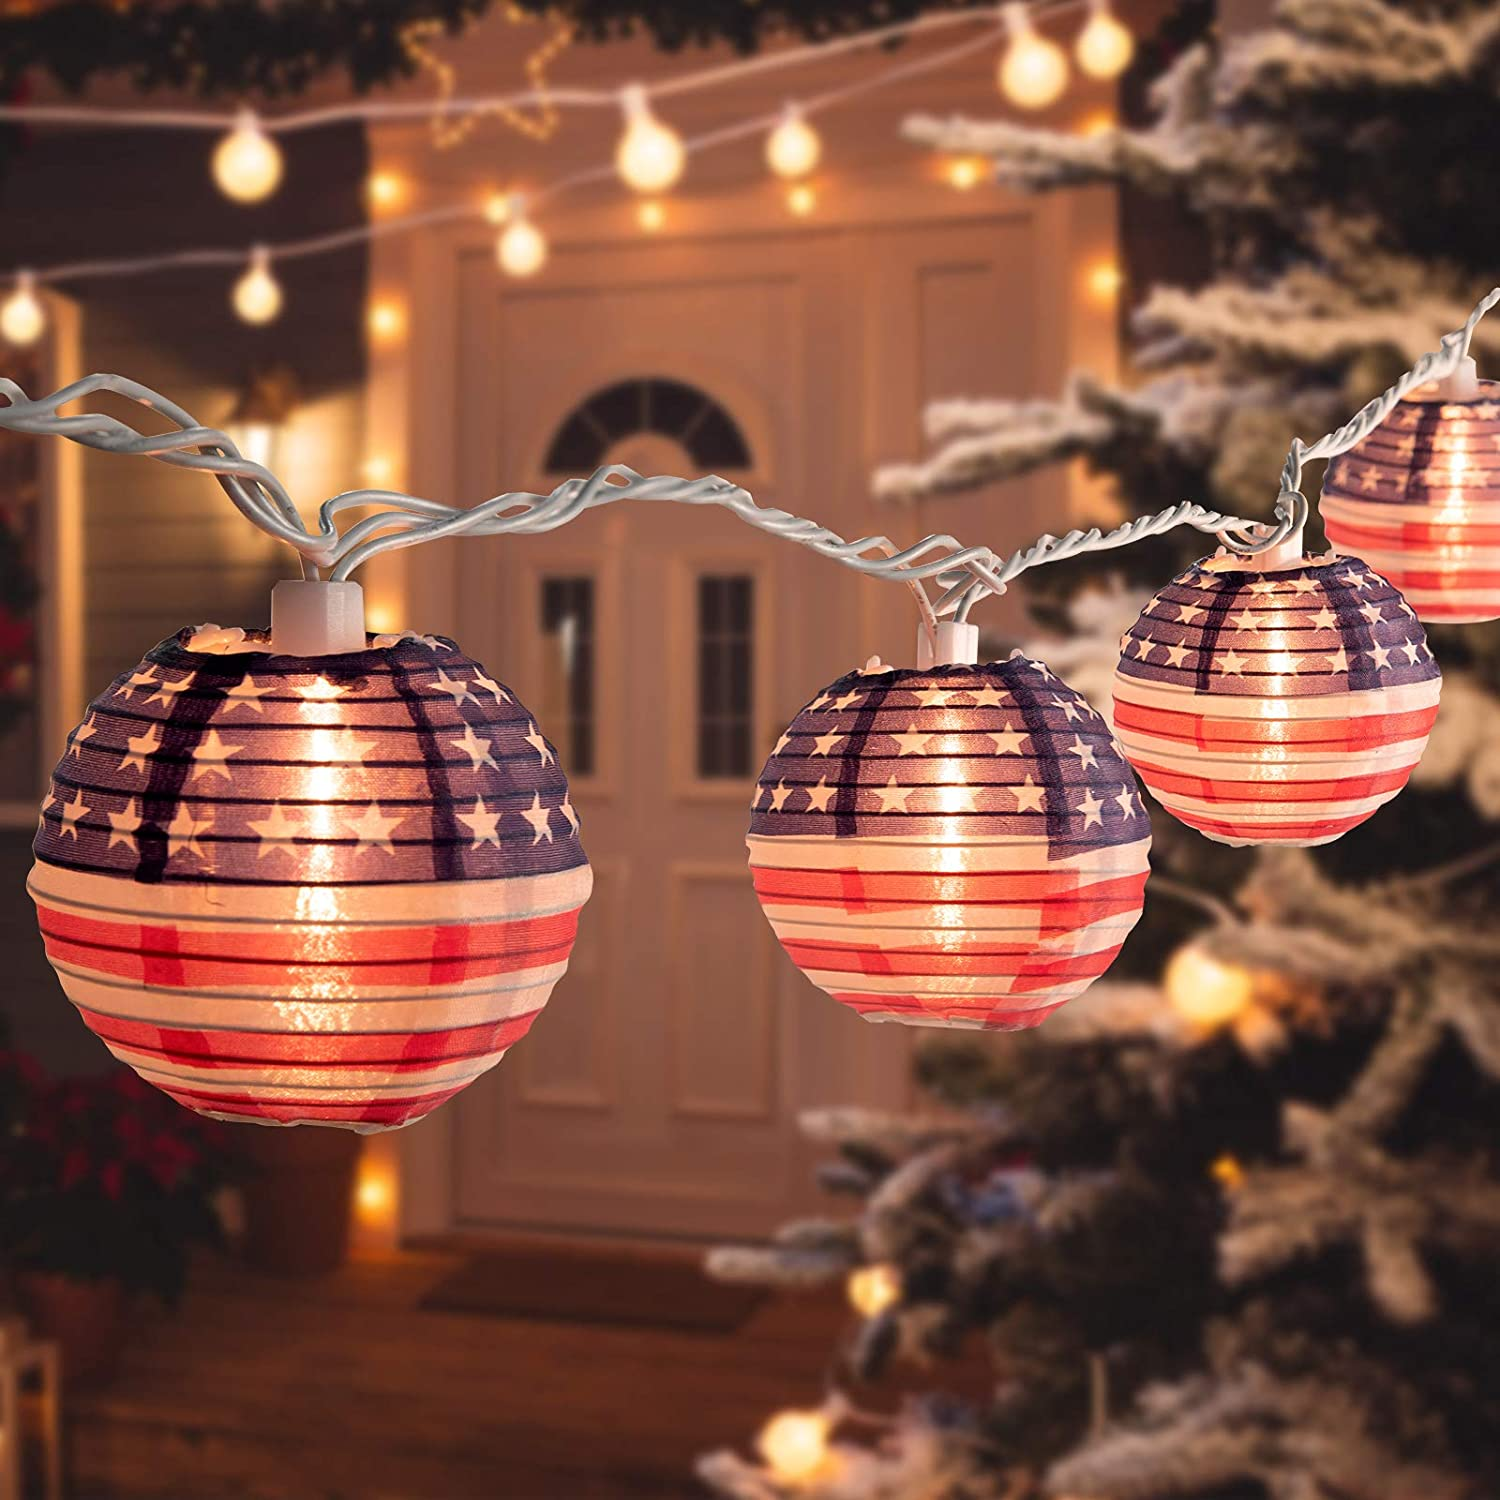 Christmas Lantern String Lights 6.7 Feet 10 Nylon Collapsible Mini American Flag Lantern Lights, Hanging Waterproof Connectable for Room Decor Garden Patio Outdoor Holiday Time Decorative, Warm White